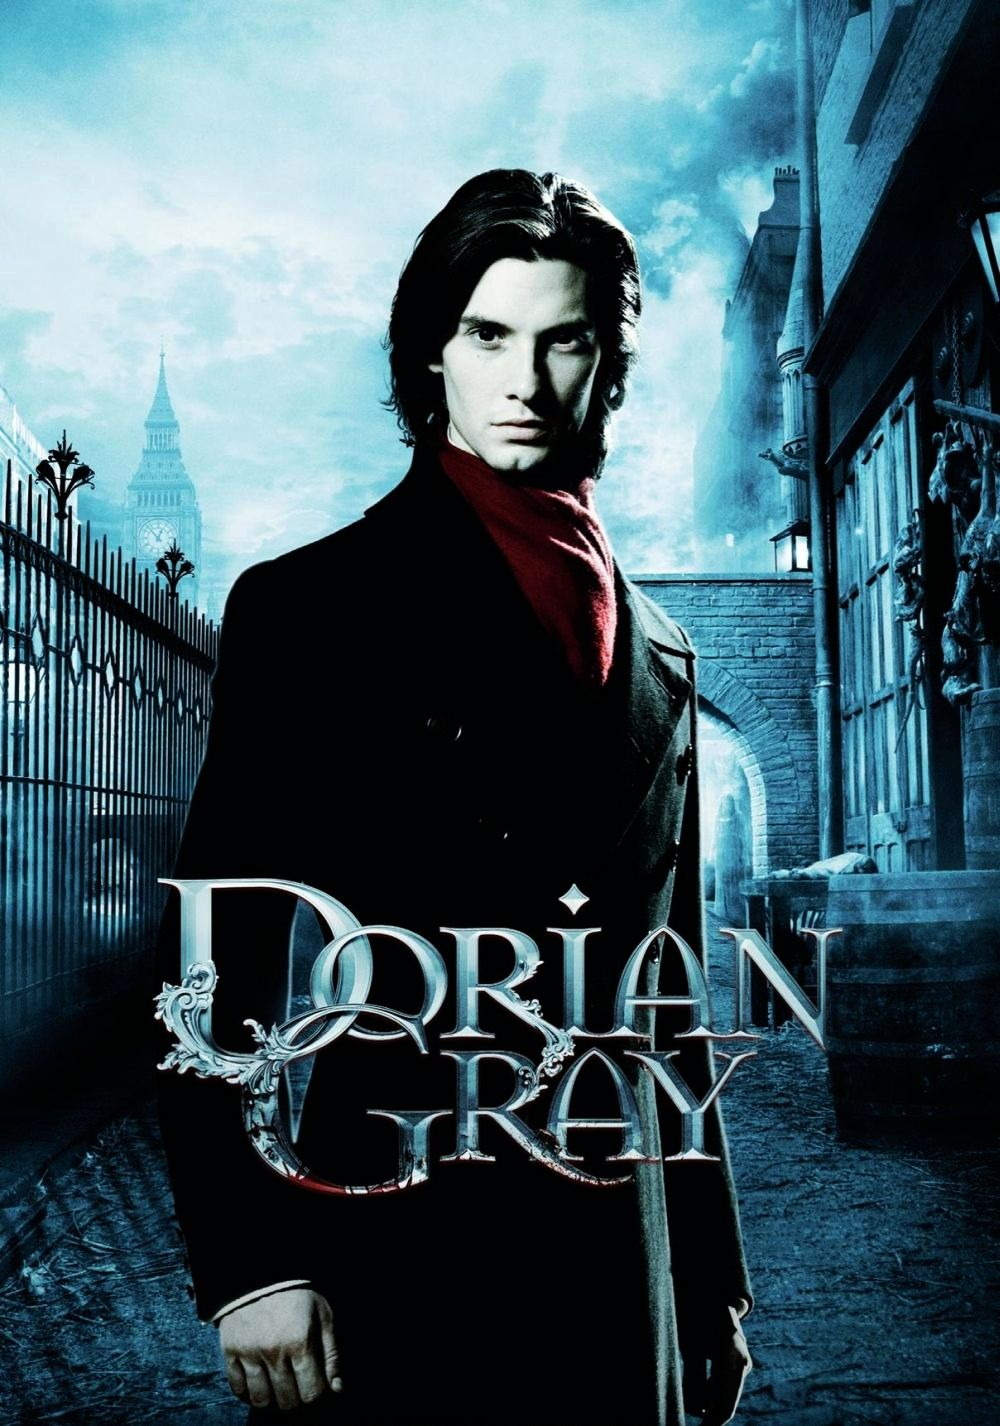 Retrato de dorian gray filme download